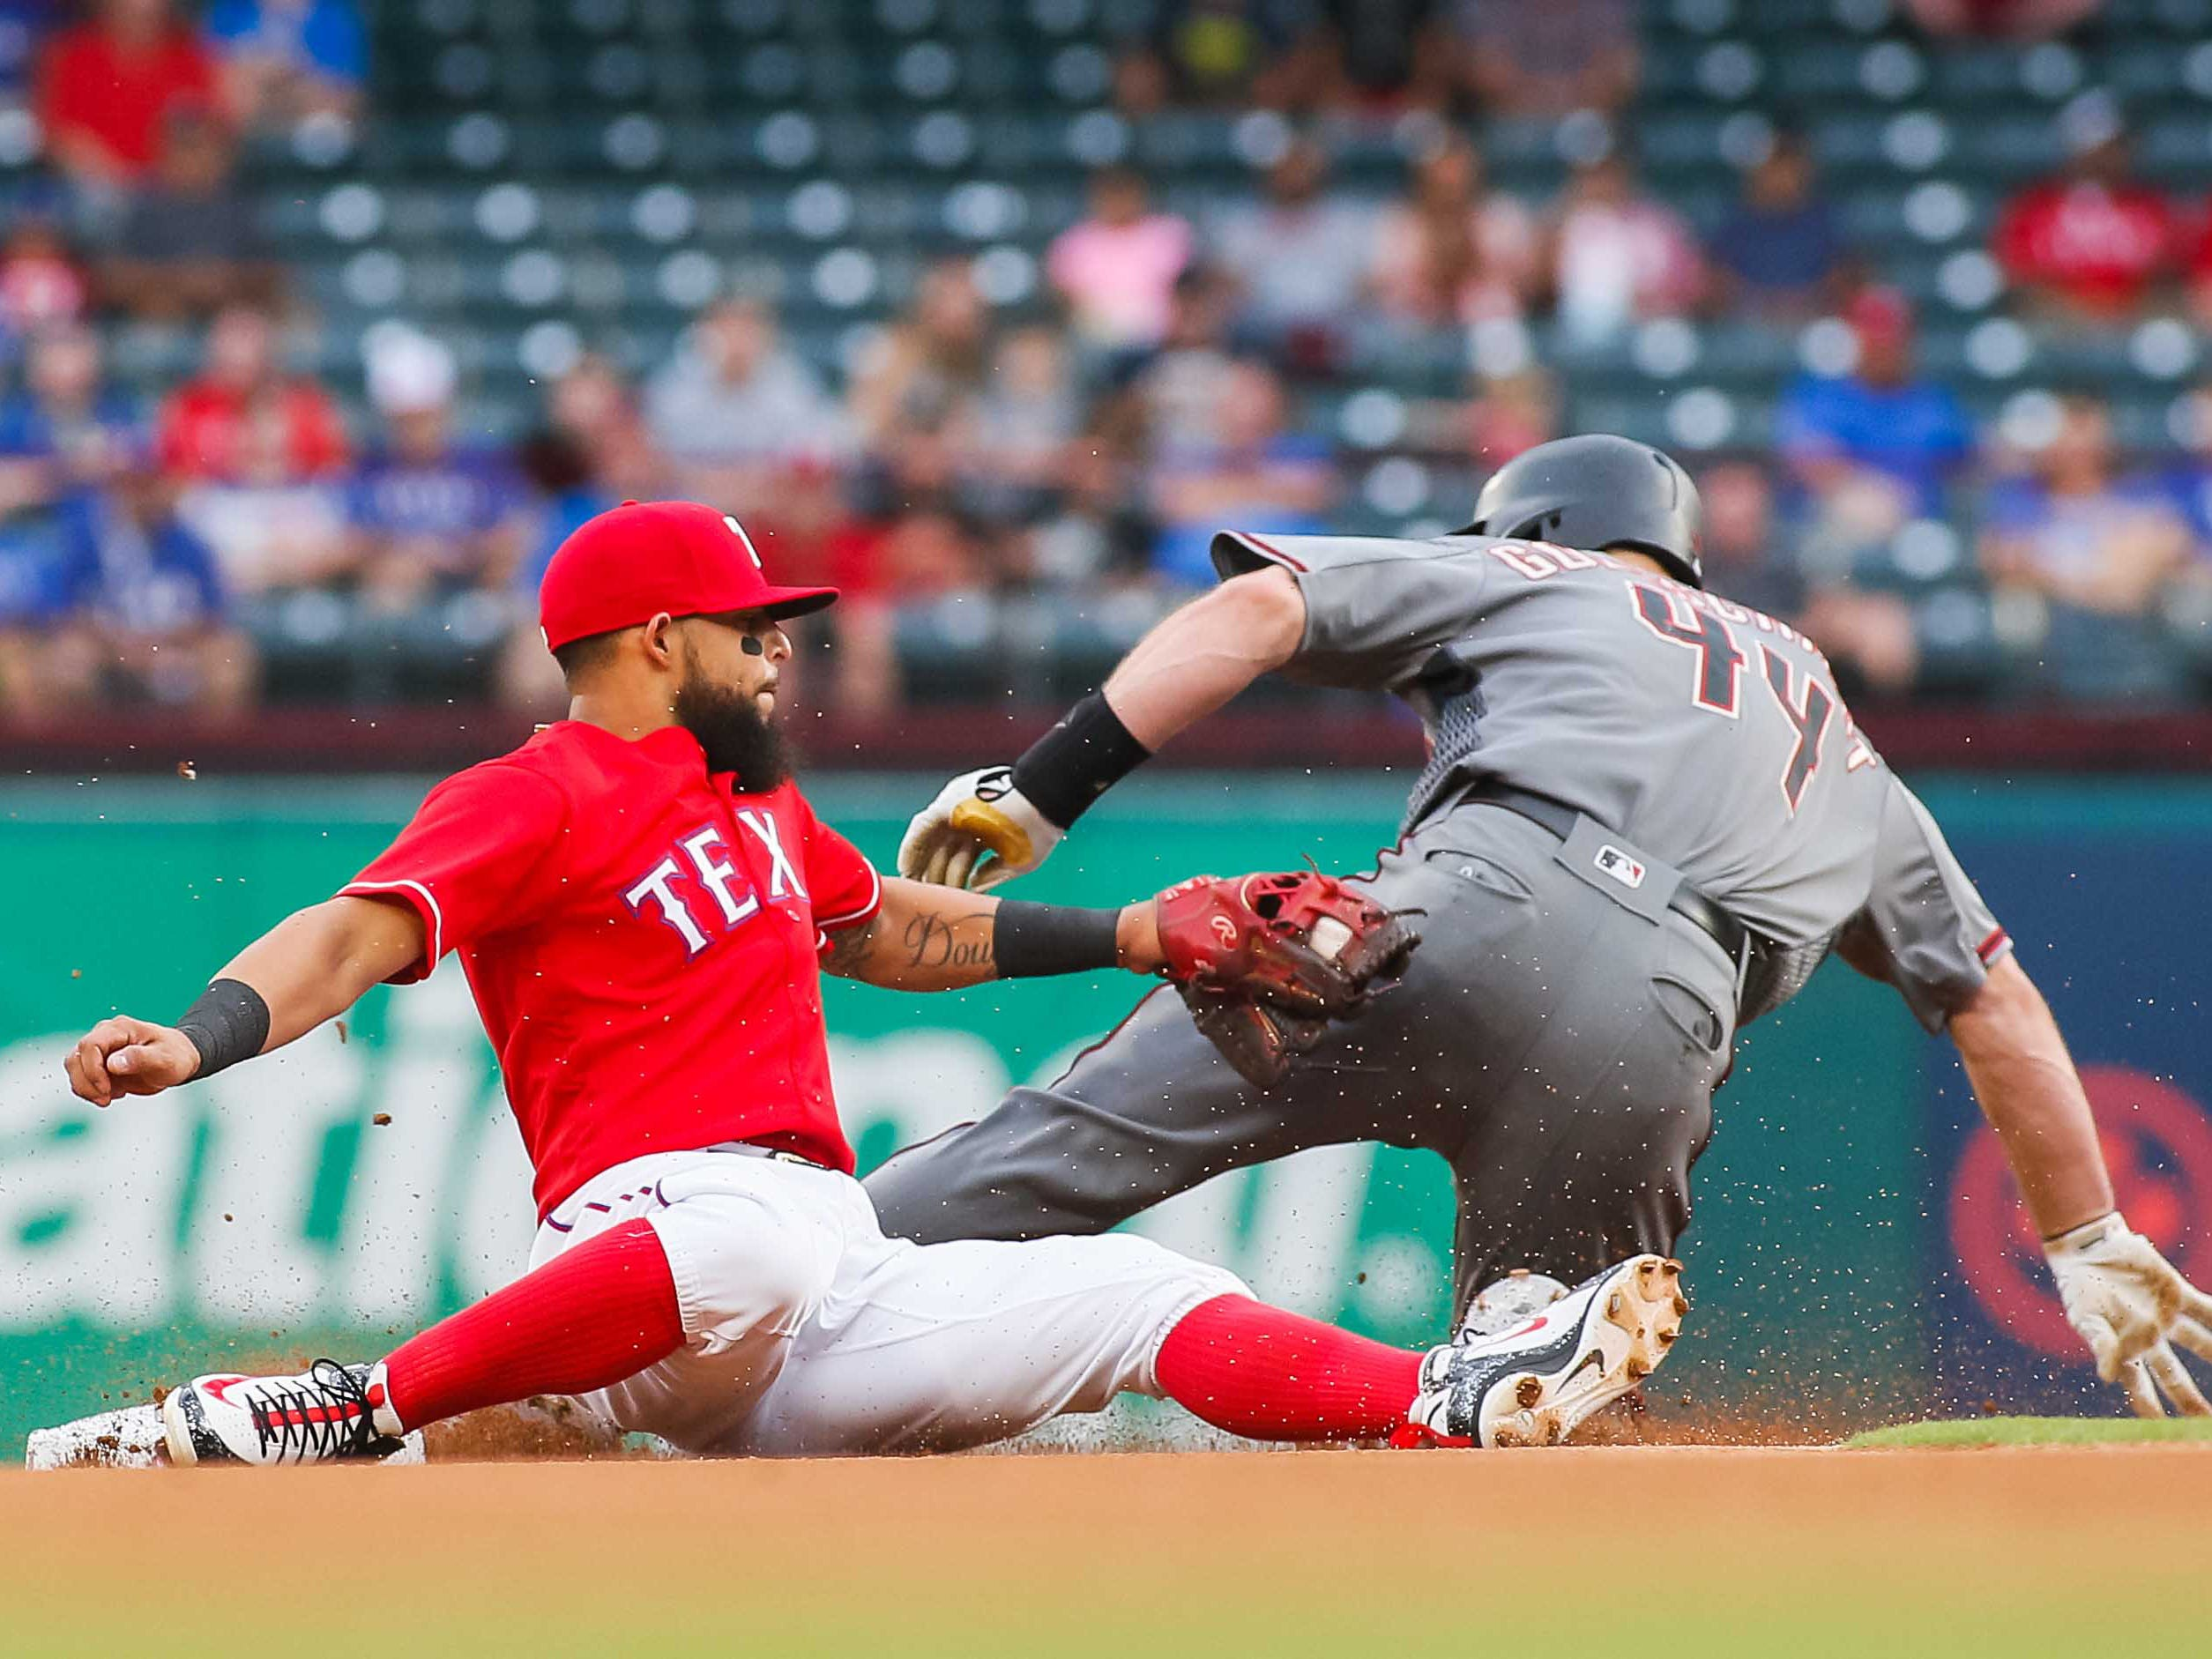 Aug 13, 2018; Arlington, TX, USA; Arizona Diamondbacks first baseman Paul Goldschmidt (44) steals second base as he slides under the tag of Texas Rangers second baseman Rougned Odor (12) in the first inning at Globe Life Park in Arlington. Mandatory Credit: Ray Carlin-USA TODAY Sports